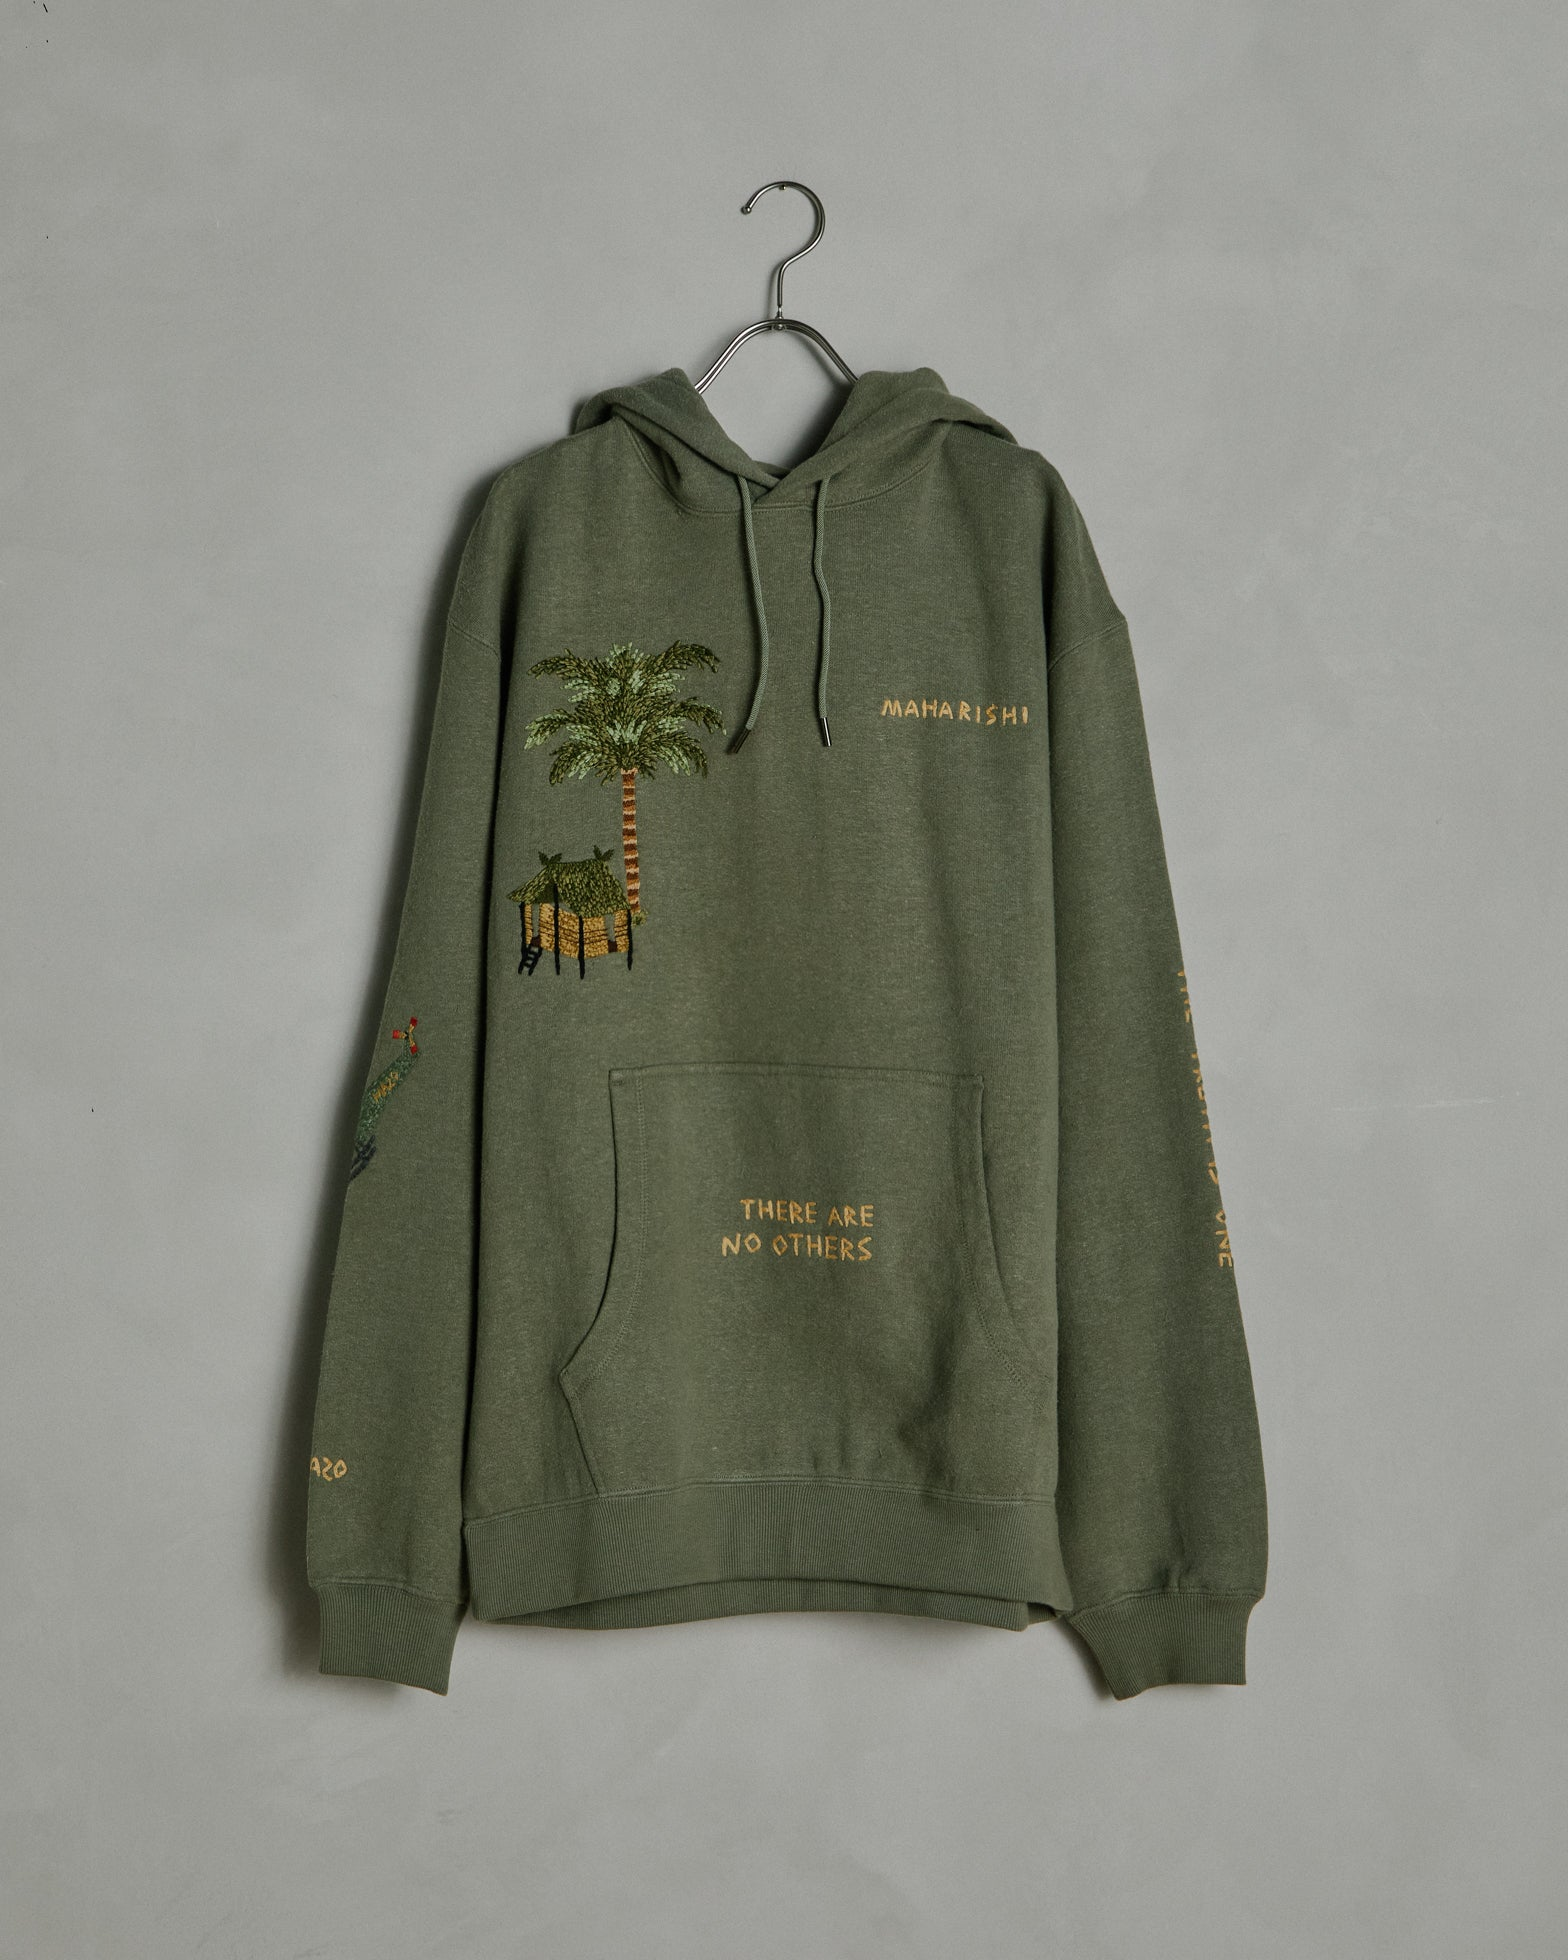 6363 Story Hooded Sweatshirt in Maha Olive